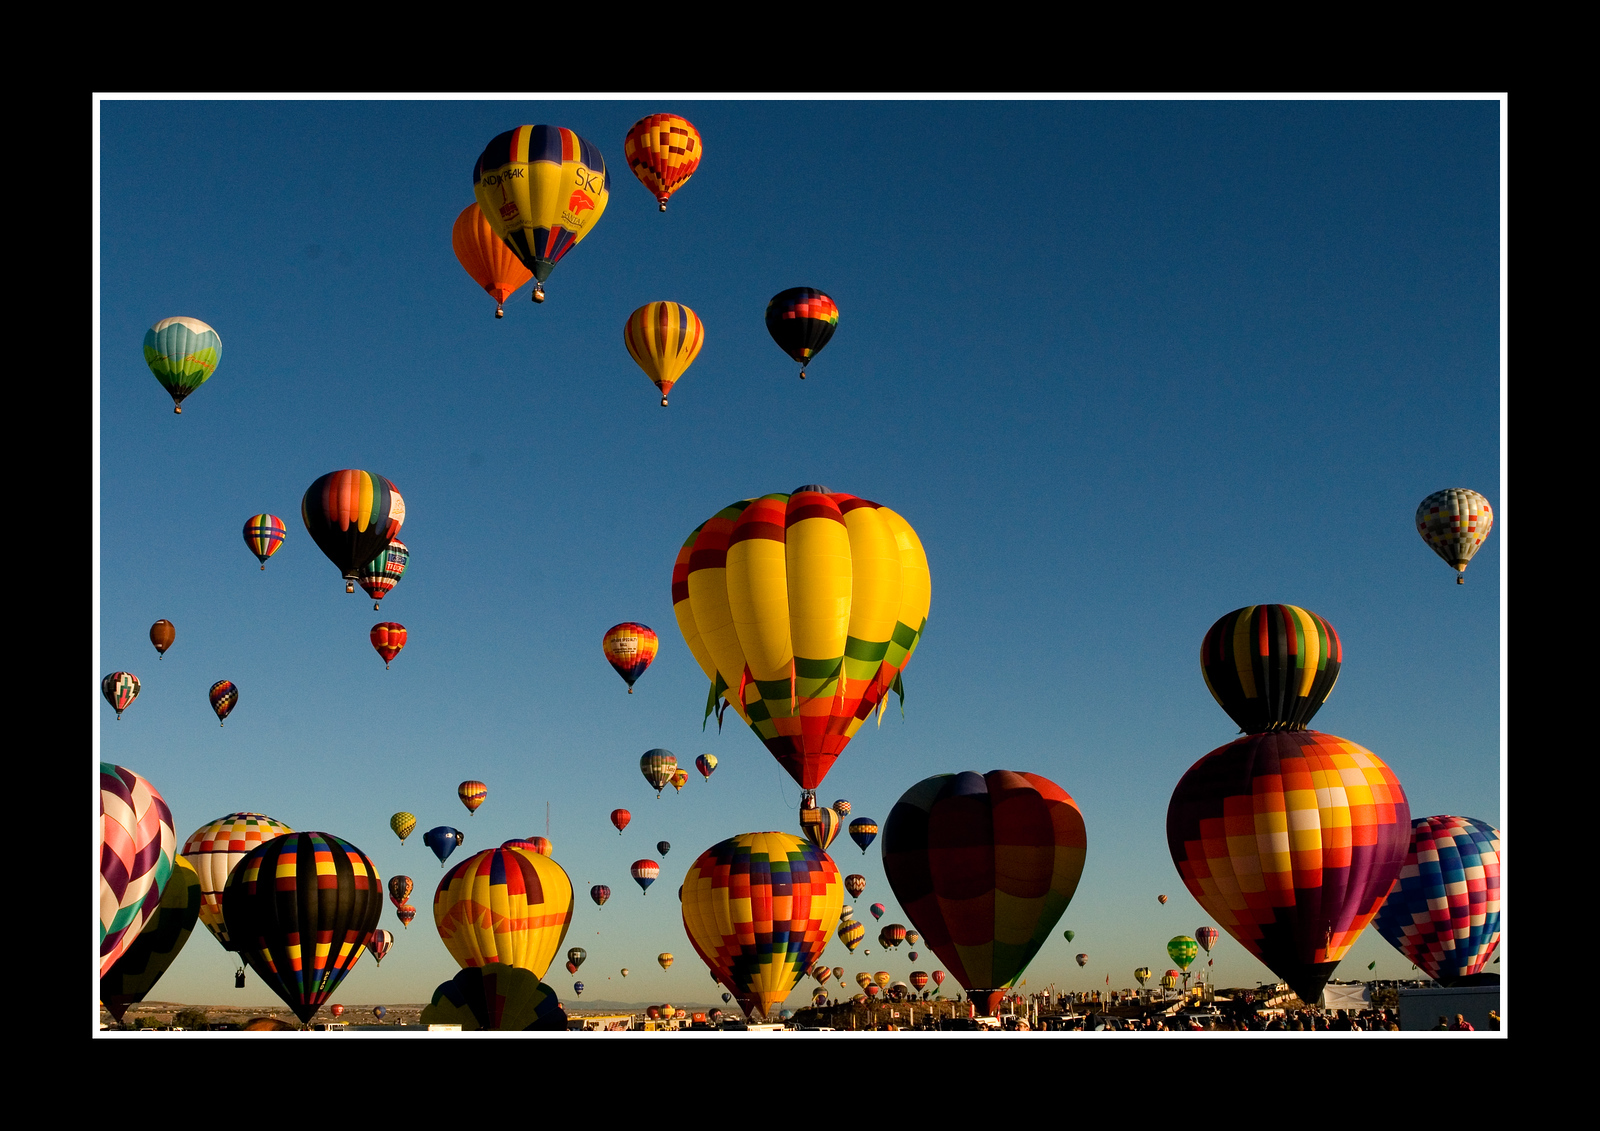 IMAGE: https://photos.smugmug.com/Travel/ALBUQUERQUE-BALLOON-FIESTA/i-32DRhqp/0/d5f83014/X3/JPEG%20Albq%20Balloons%206120-X3.jpg